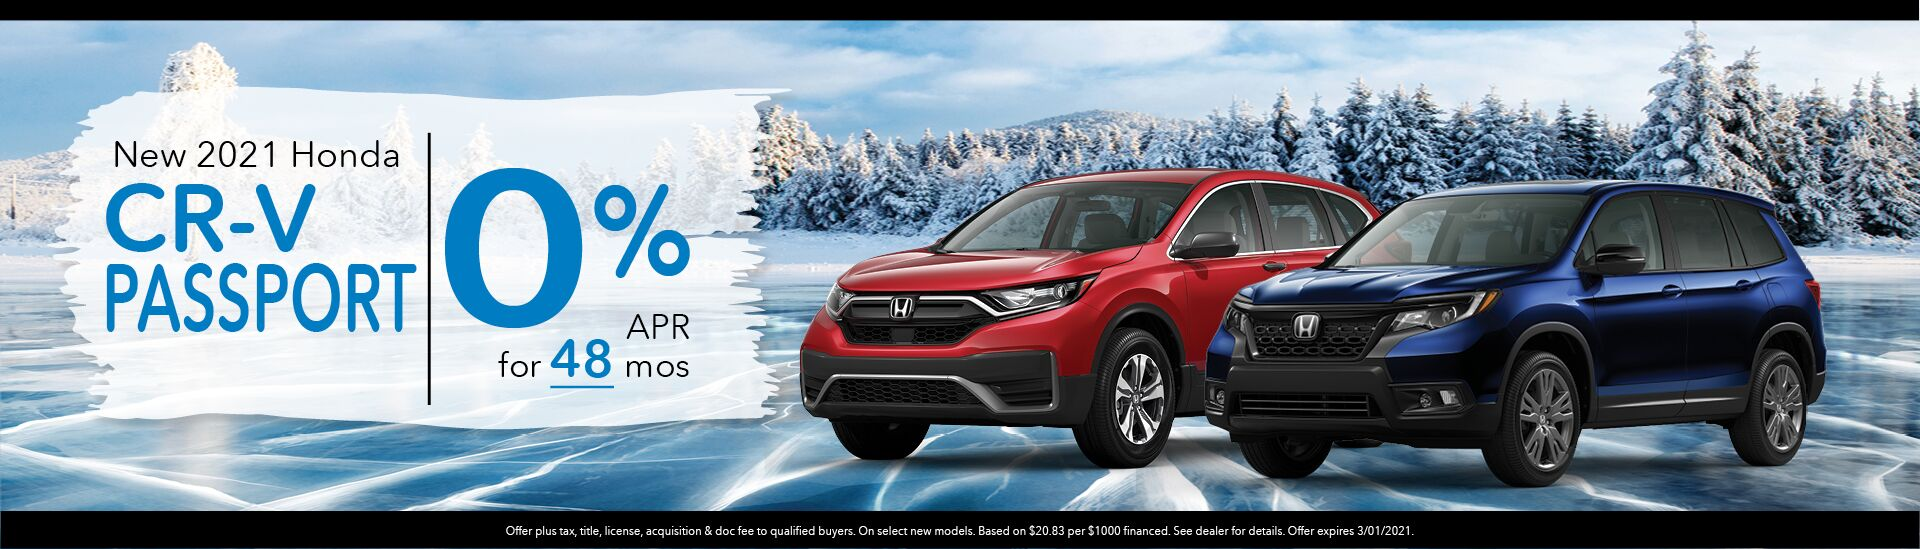 2021 Honda CRV Passport